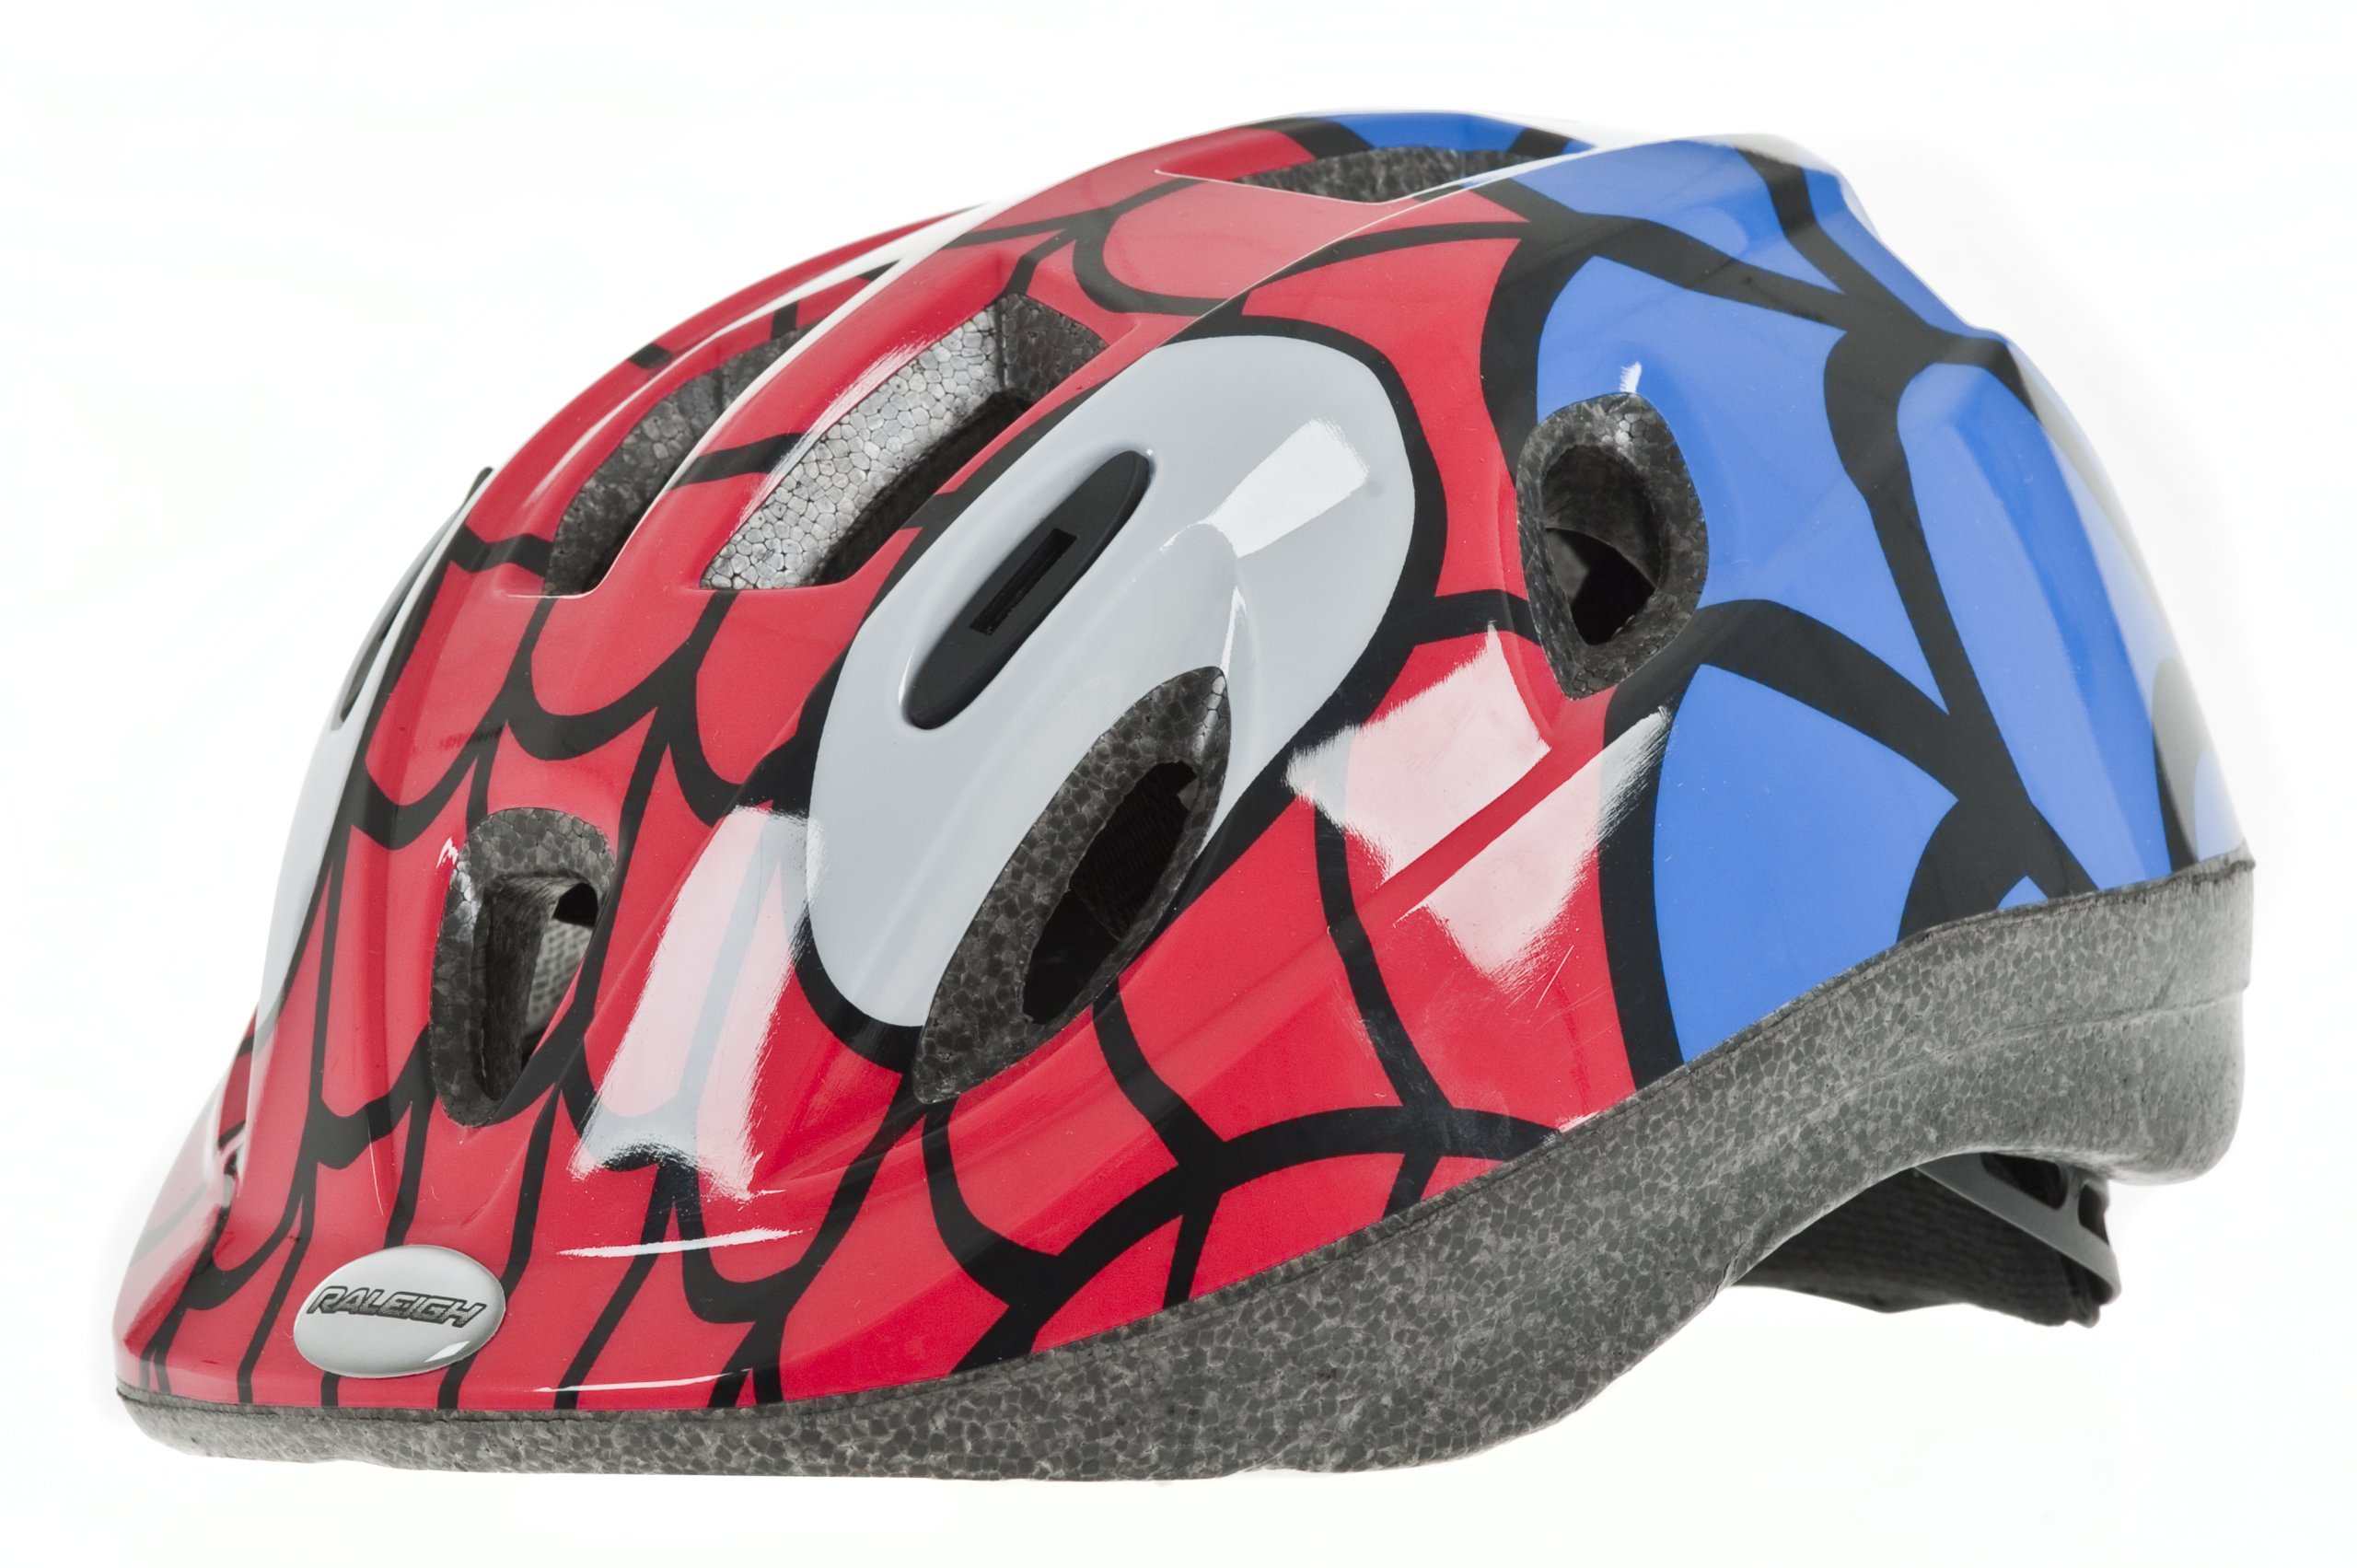 Raleigh Boy's Mystery Spiderman Cycle Helmet - Red/Blue, 48-54 cm